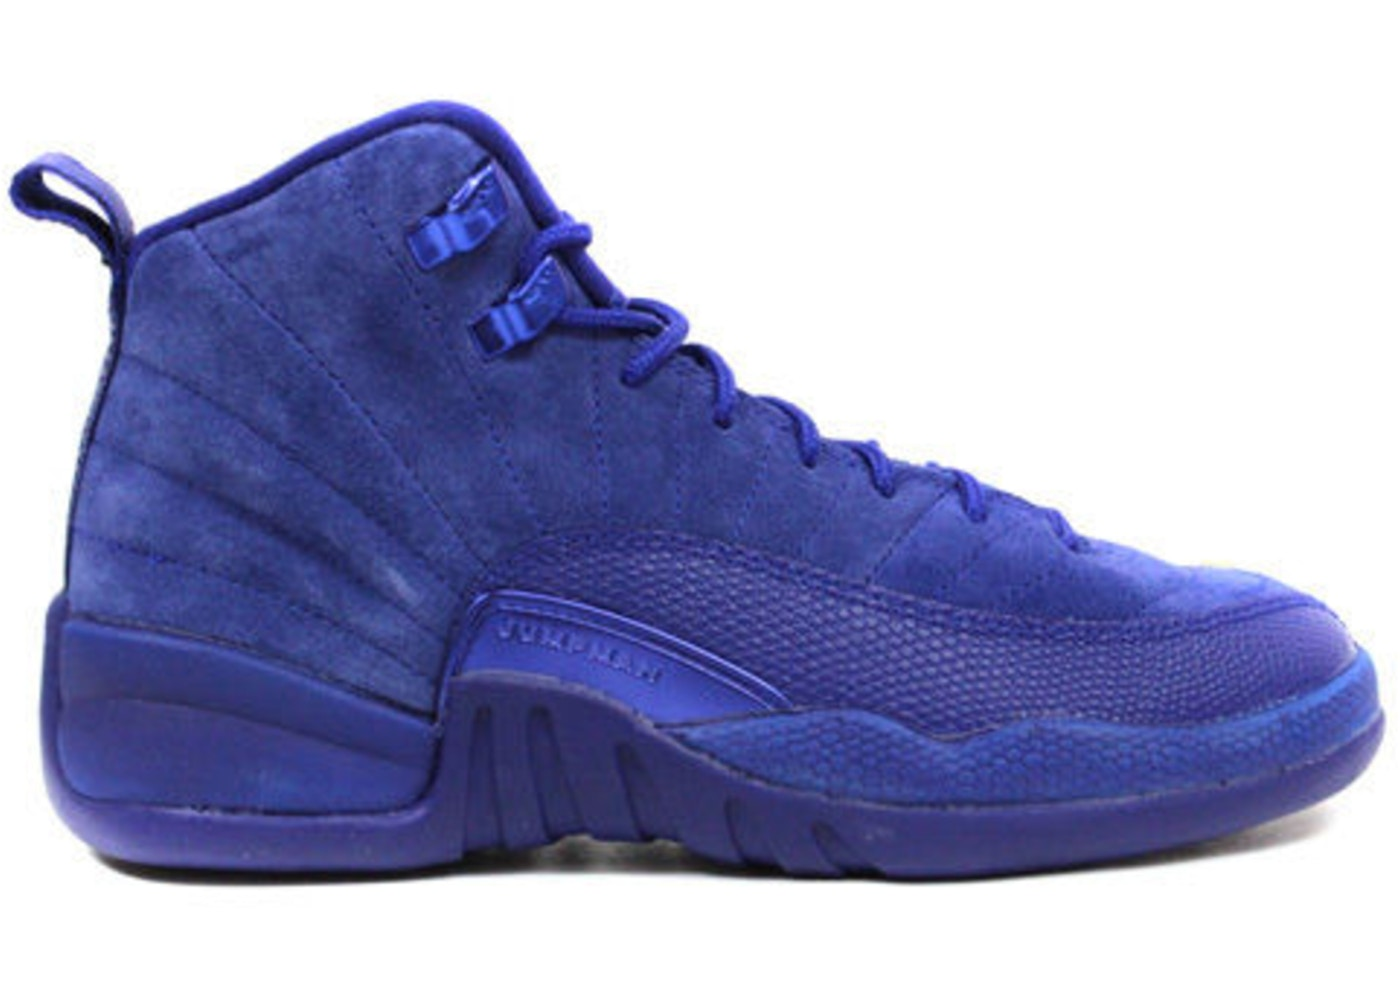 39d1b9766e9d Jordan 12 Retro Deep Royal Blue (GS) - 153265-400